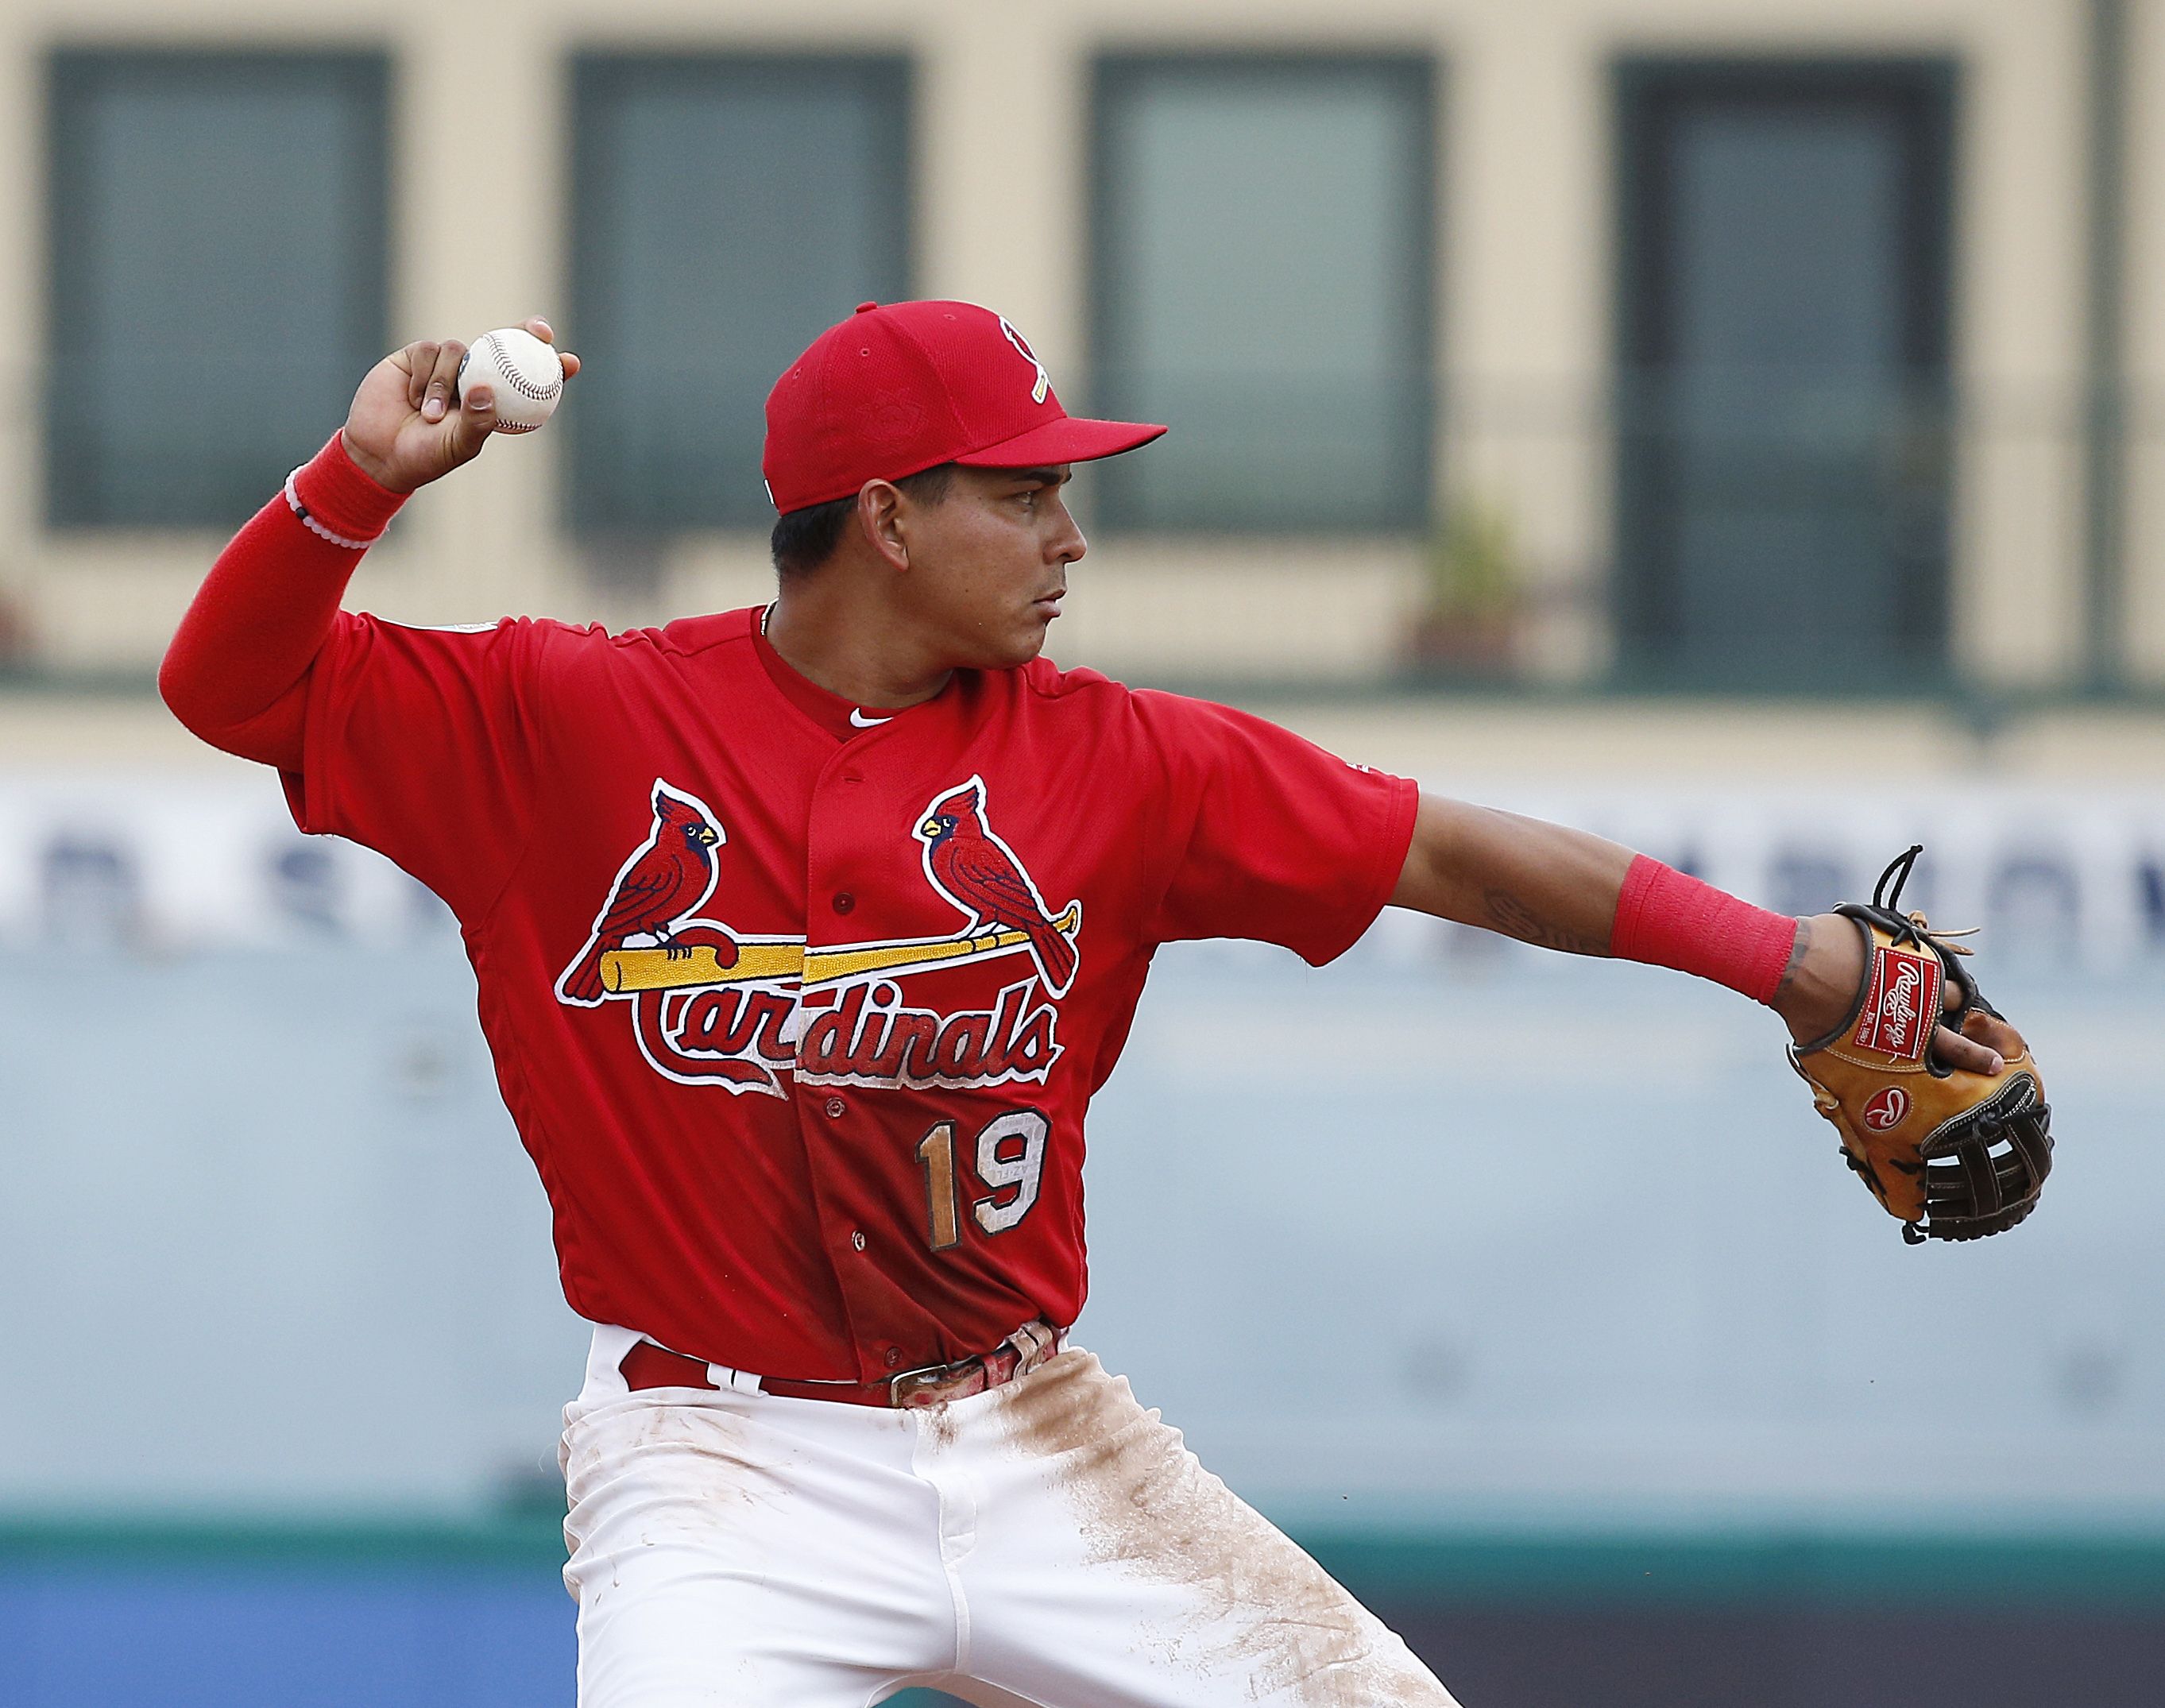 St. Louis Cardinals' short stop, Ruben Tejada, throws to first base during the fifth inning of an exhibition spring training baseball game against the Miami Marlins, Sunday, March 20, 2016, in Jupiter, Fla. (AP Photo/Brynn Anderson)